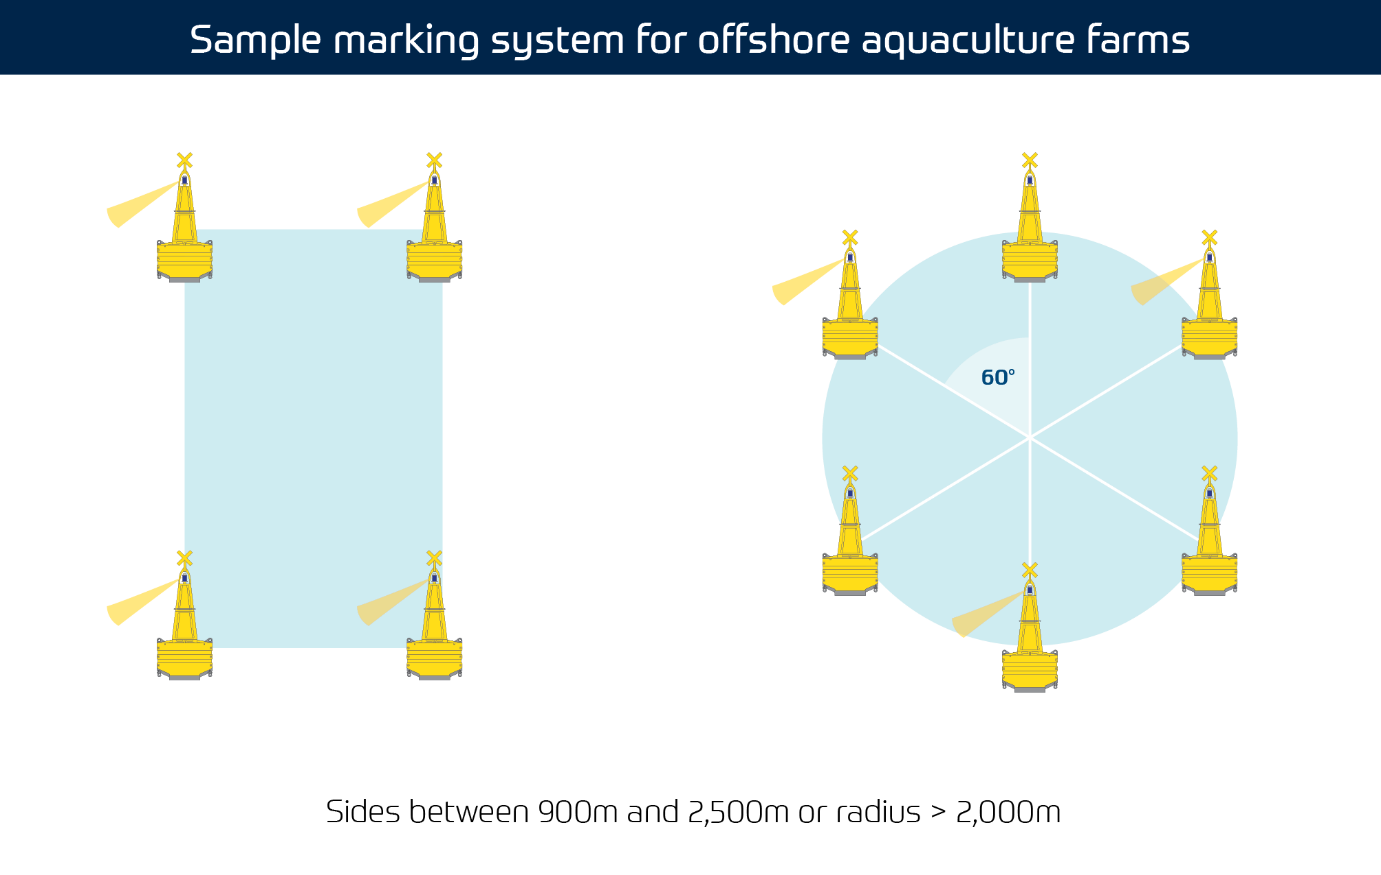 Sample marking system for offshore aquaculture farms